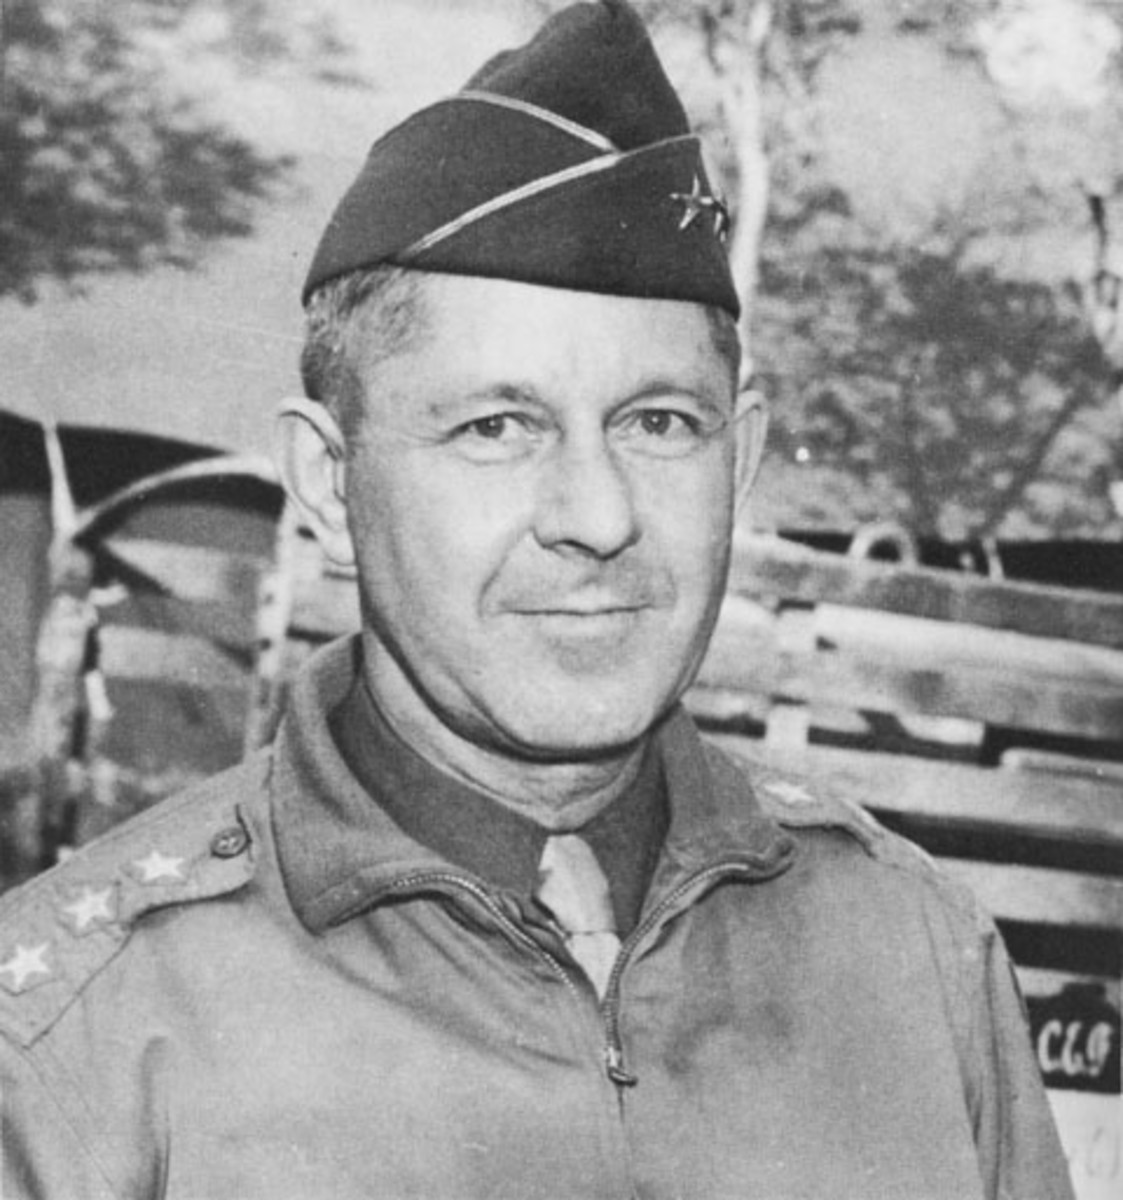 Gen. Jacob Devers. He went on to command the 6th Army Group in the last year of the war.